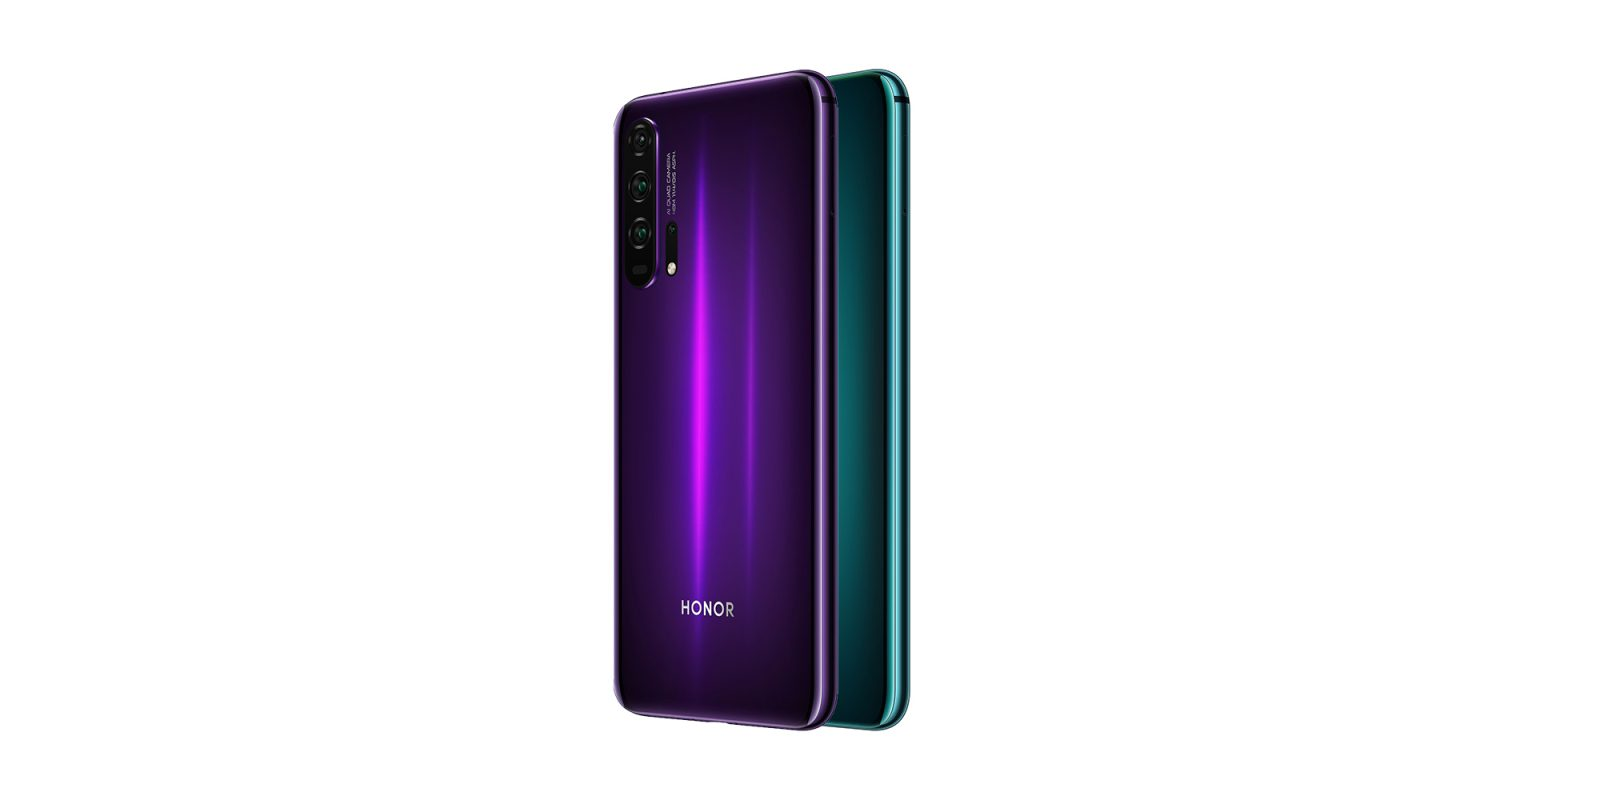 The Honor 20 Pro will go on sale on August 1 for £549